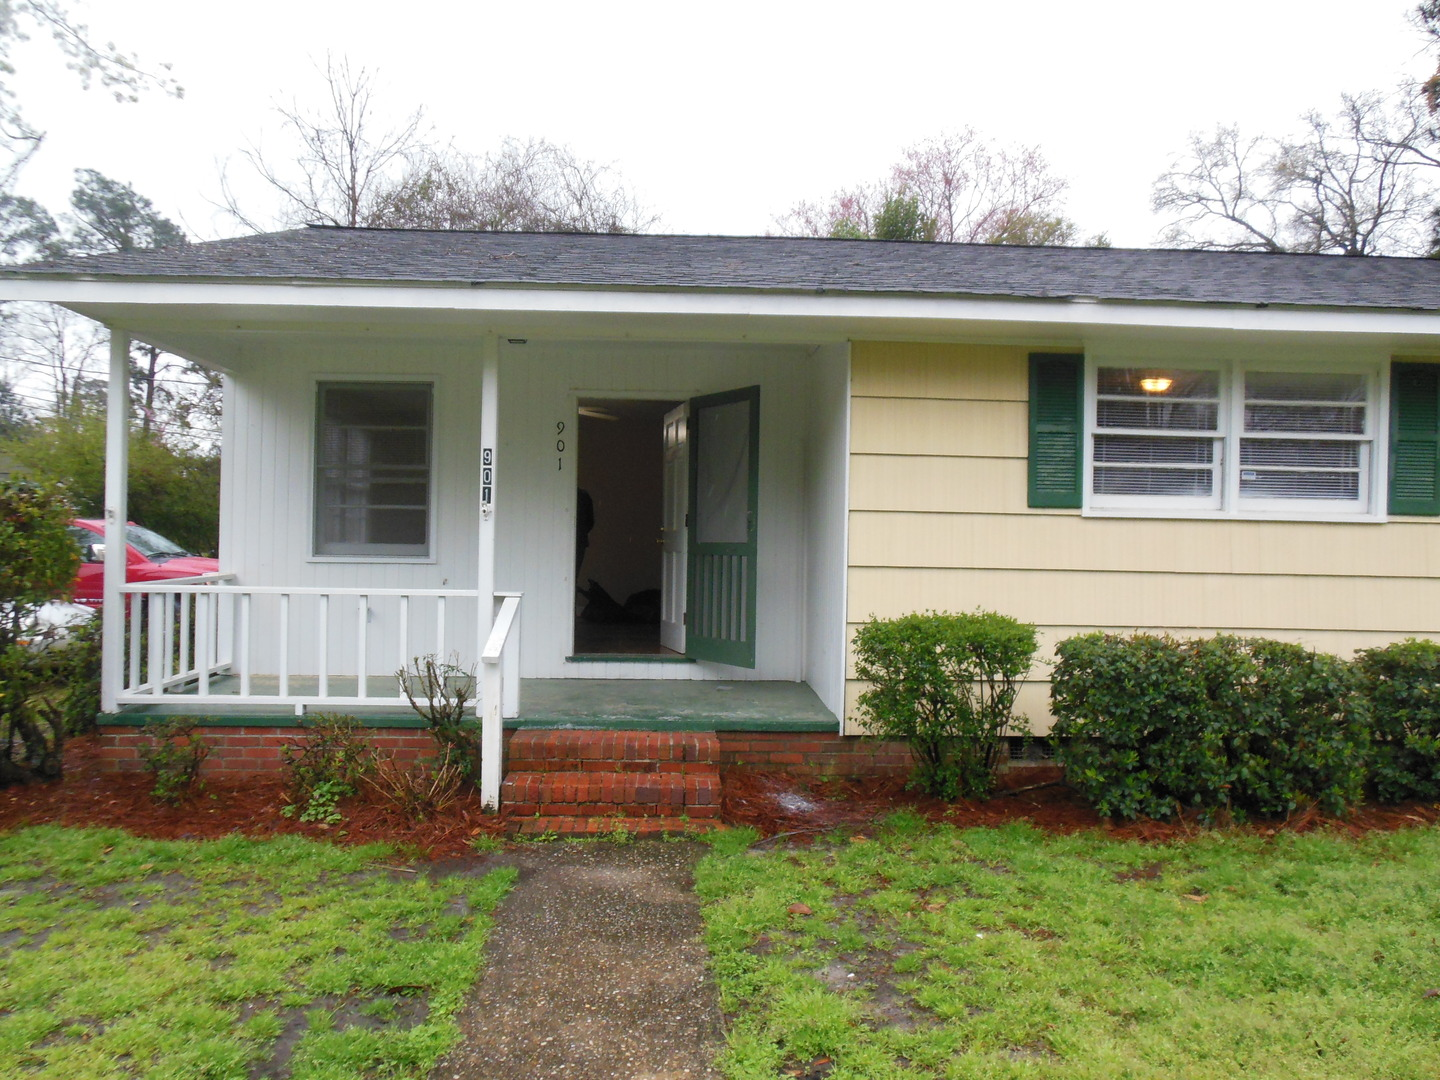 901 tenth ave, conway, sc 29526